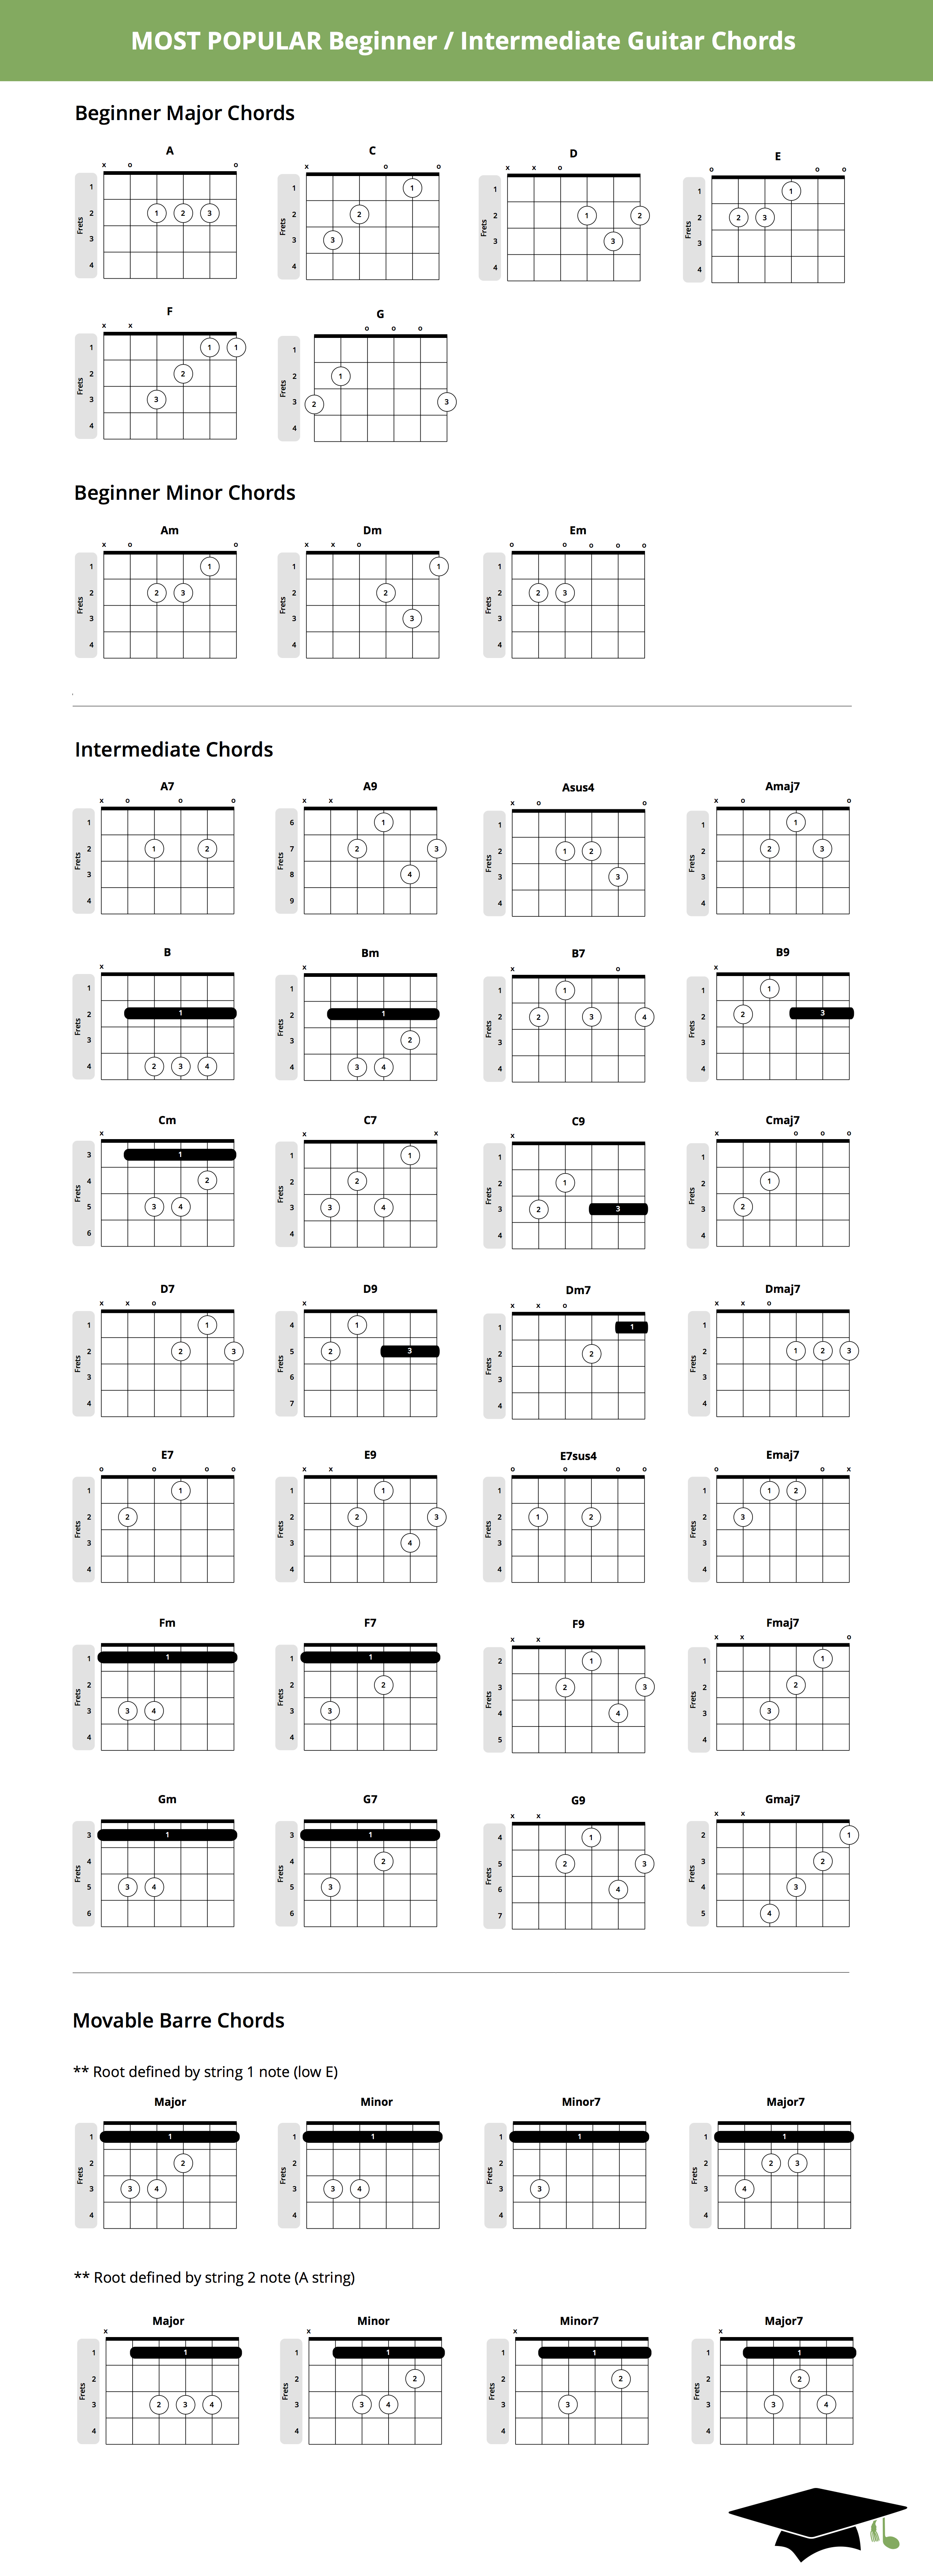 The Essential Guitar Chords Chart Pro Music Tutor Blog